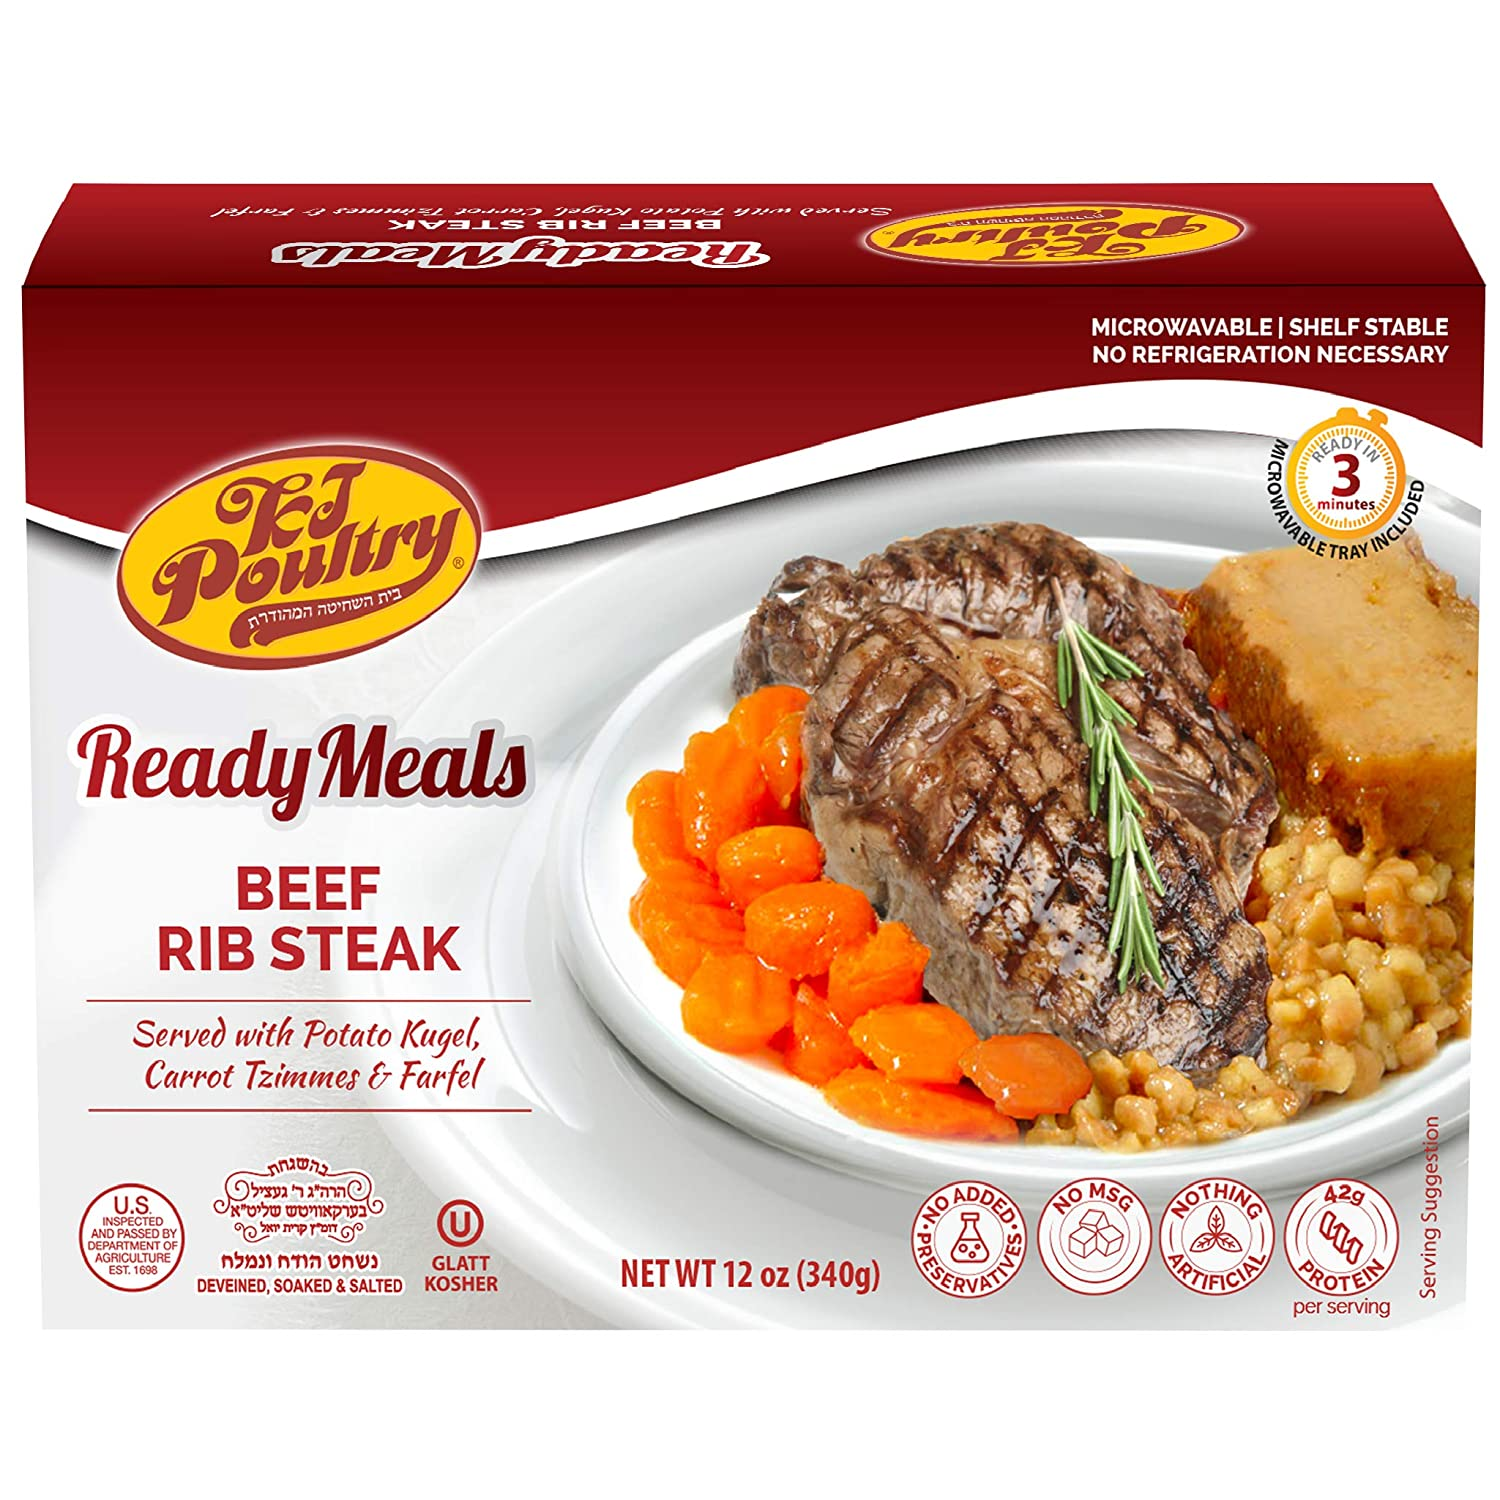 Kosher Mre Meat Meals Ready to Eat, Beef Rib Steak & Potato Kugel (1 Pack) - Prepared Entree Fully Cooked, Shelf Stable Microwave Dinner – Travel, Military, Camping, Emergency Survival Canned Food